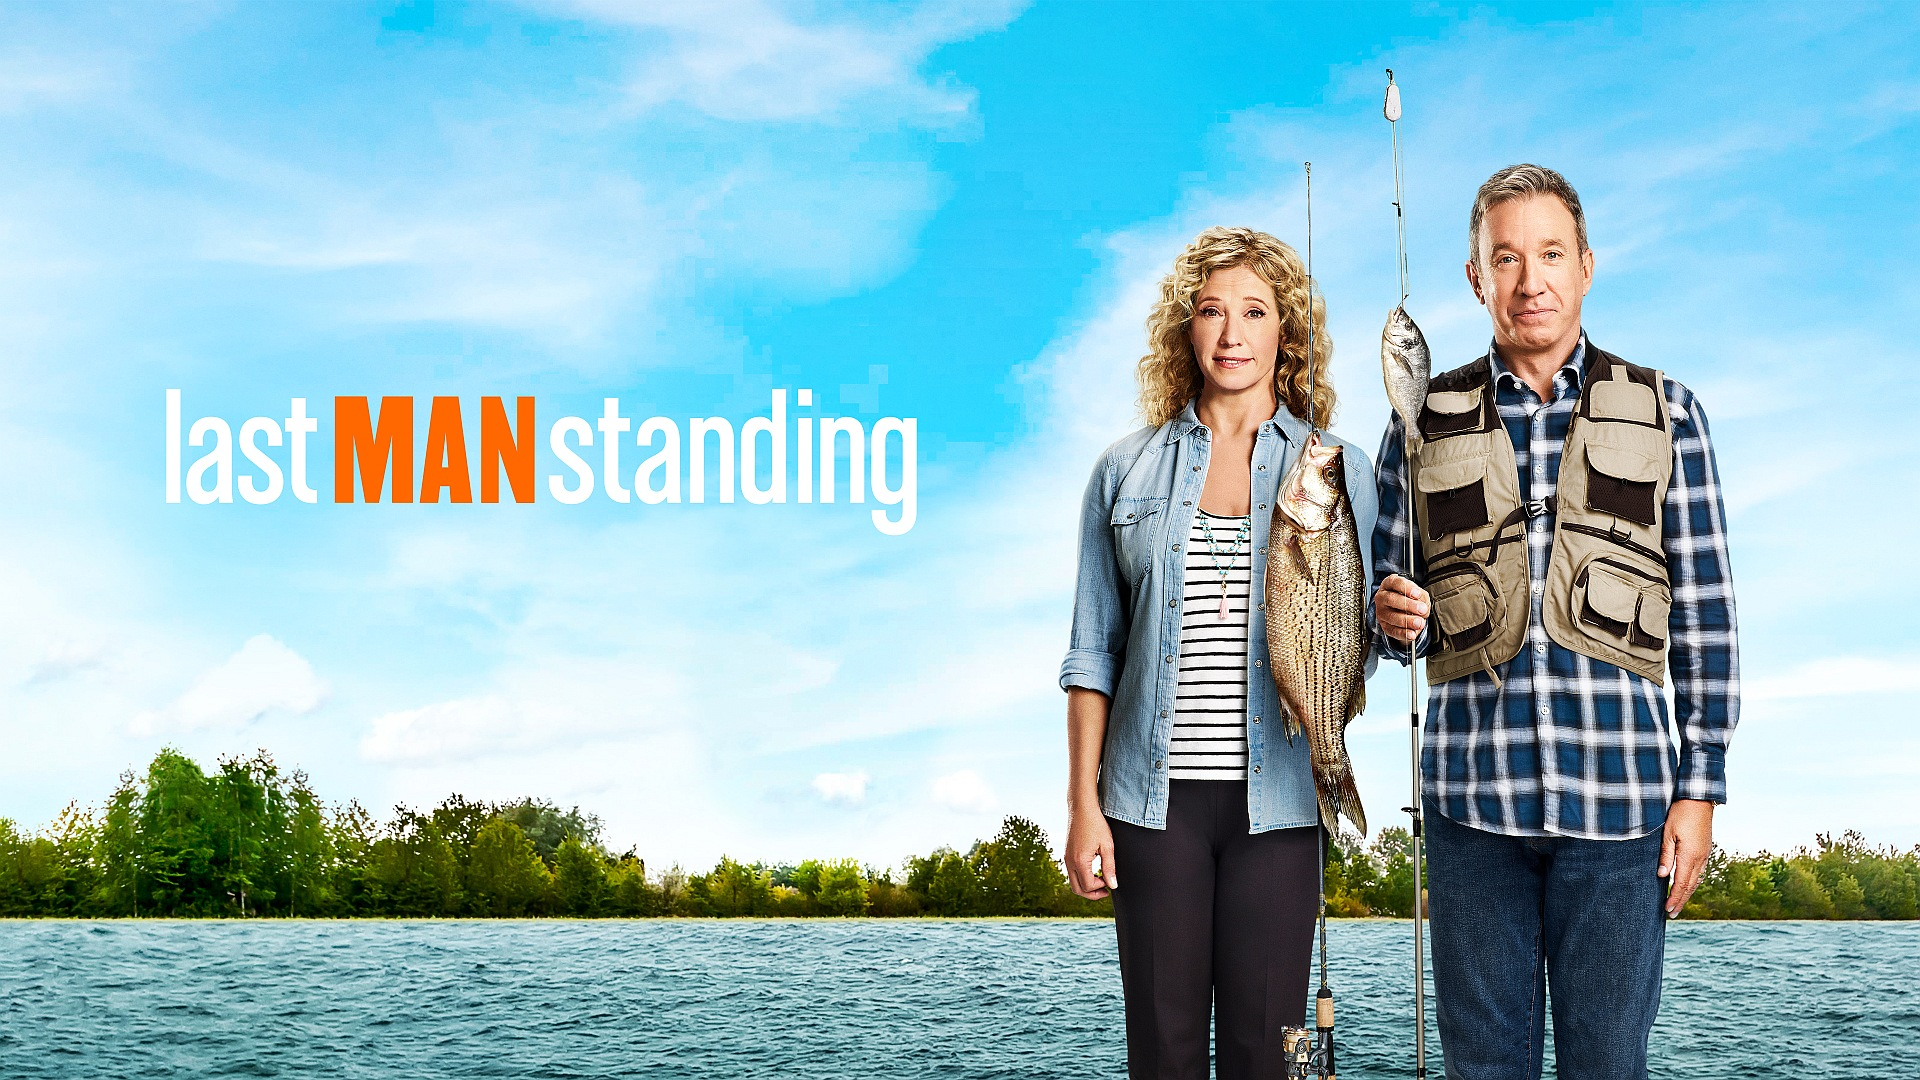 Last Man Standing will have a ninth season